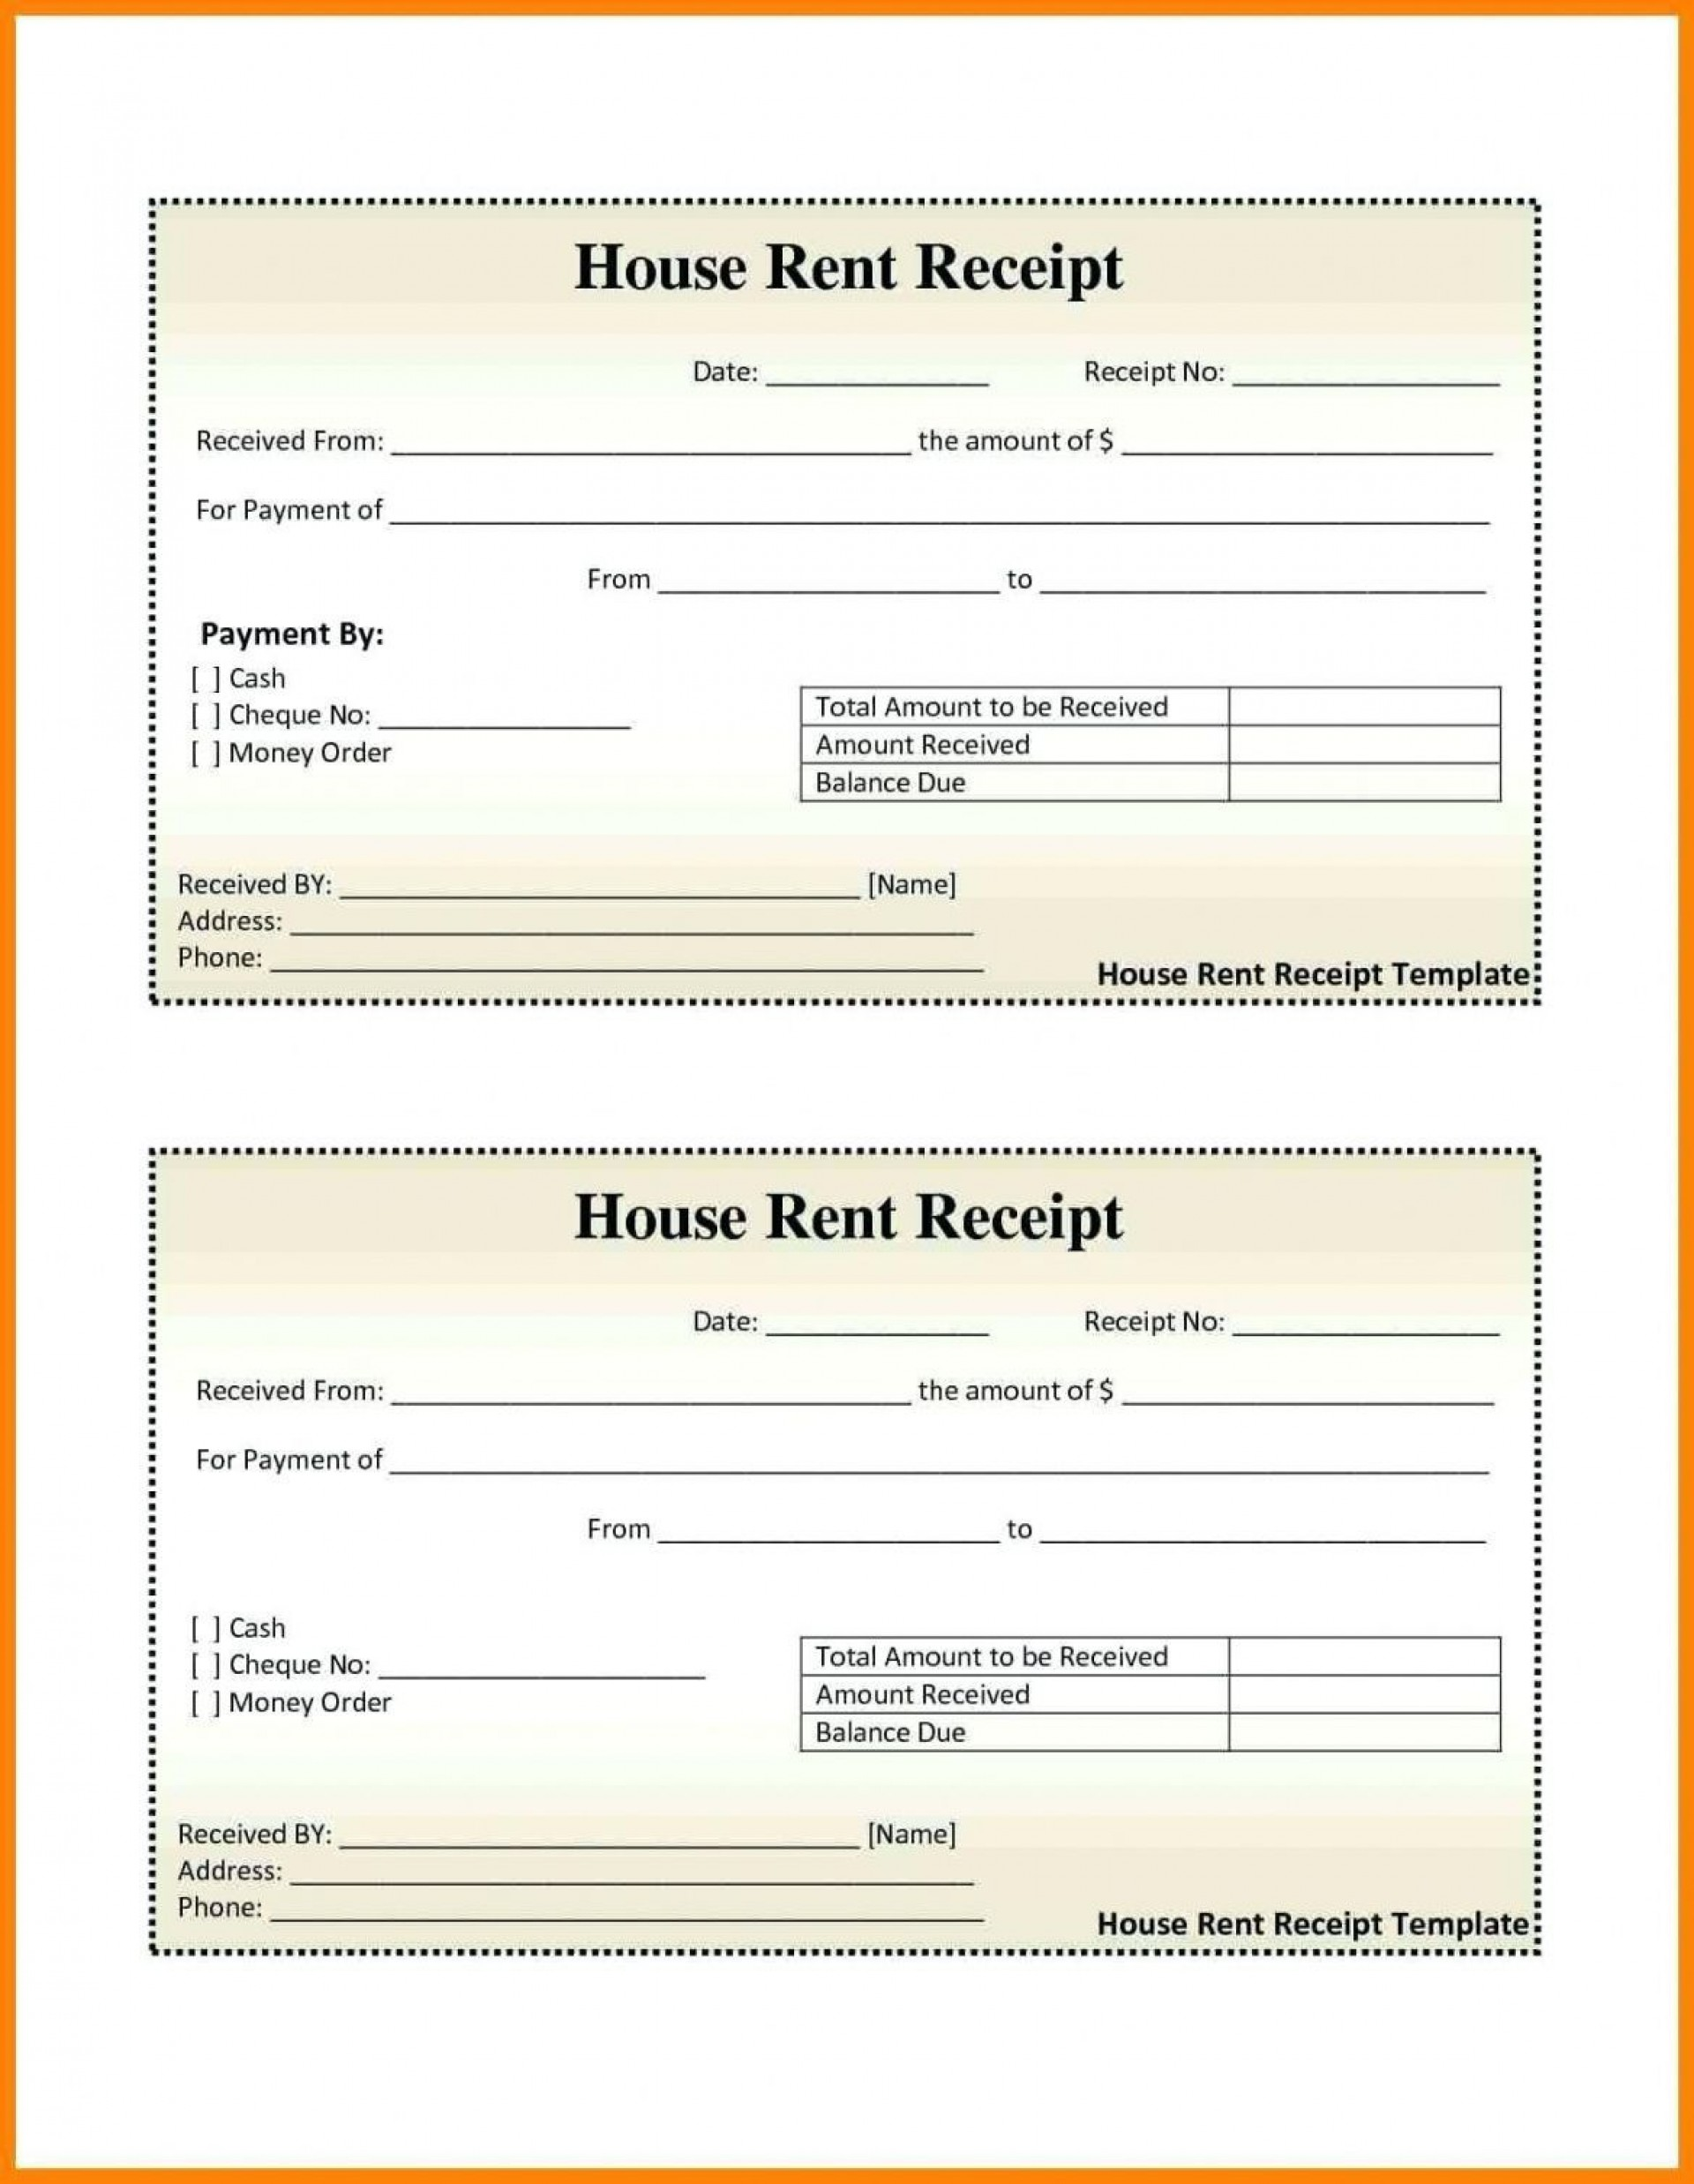 001 Remarkable House Rent Receipt Template India Doc Sample  Format Download1920